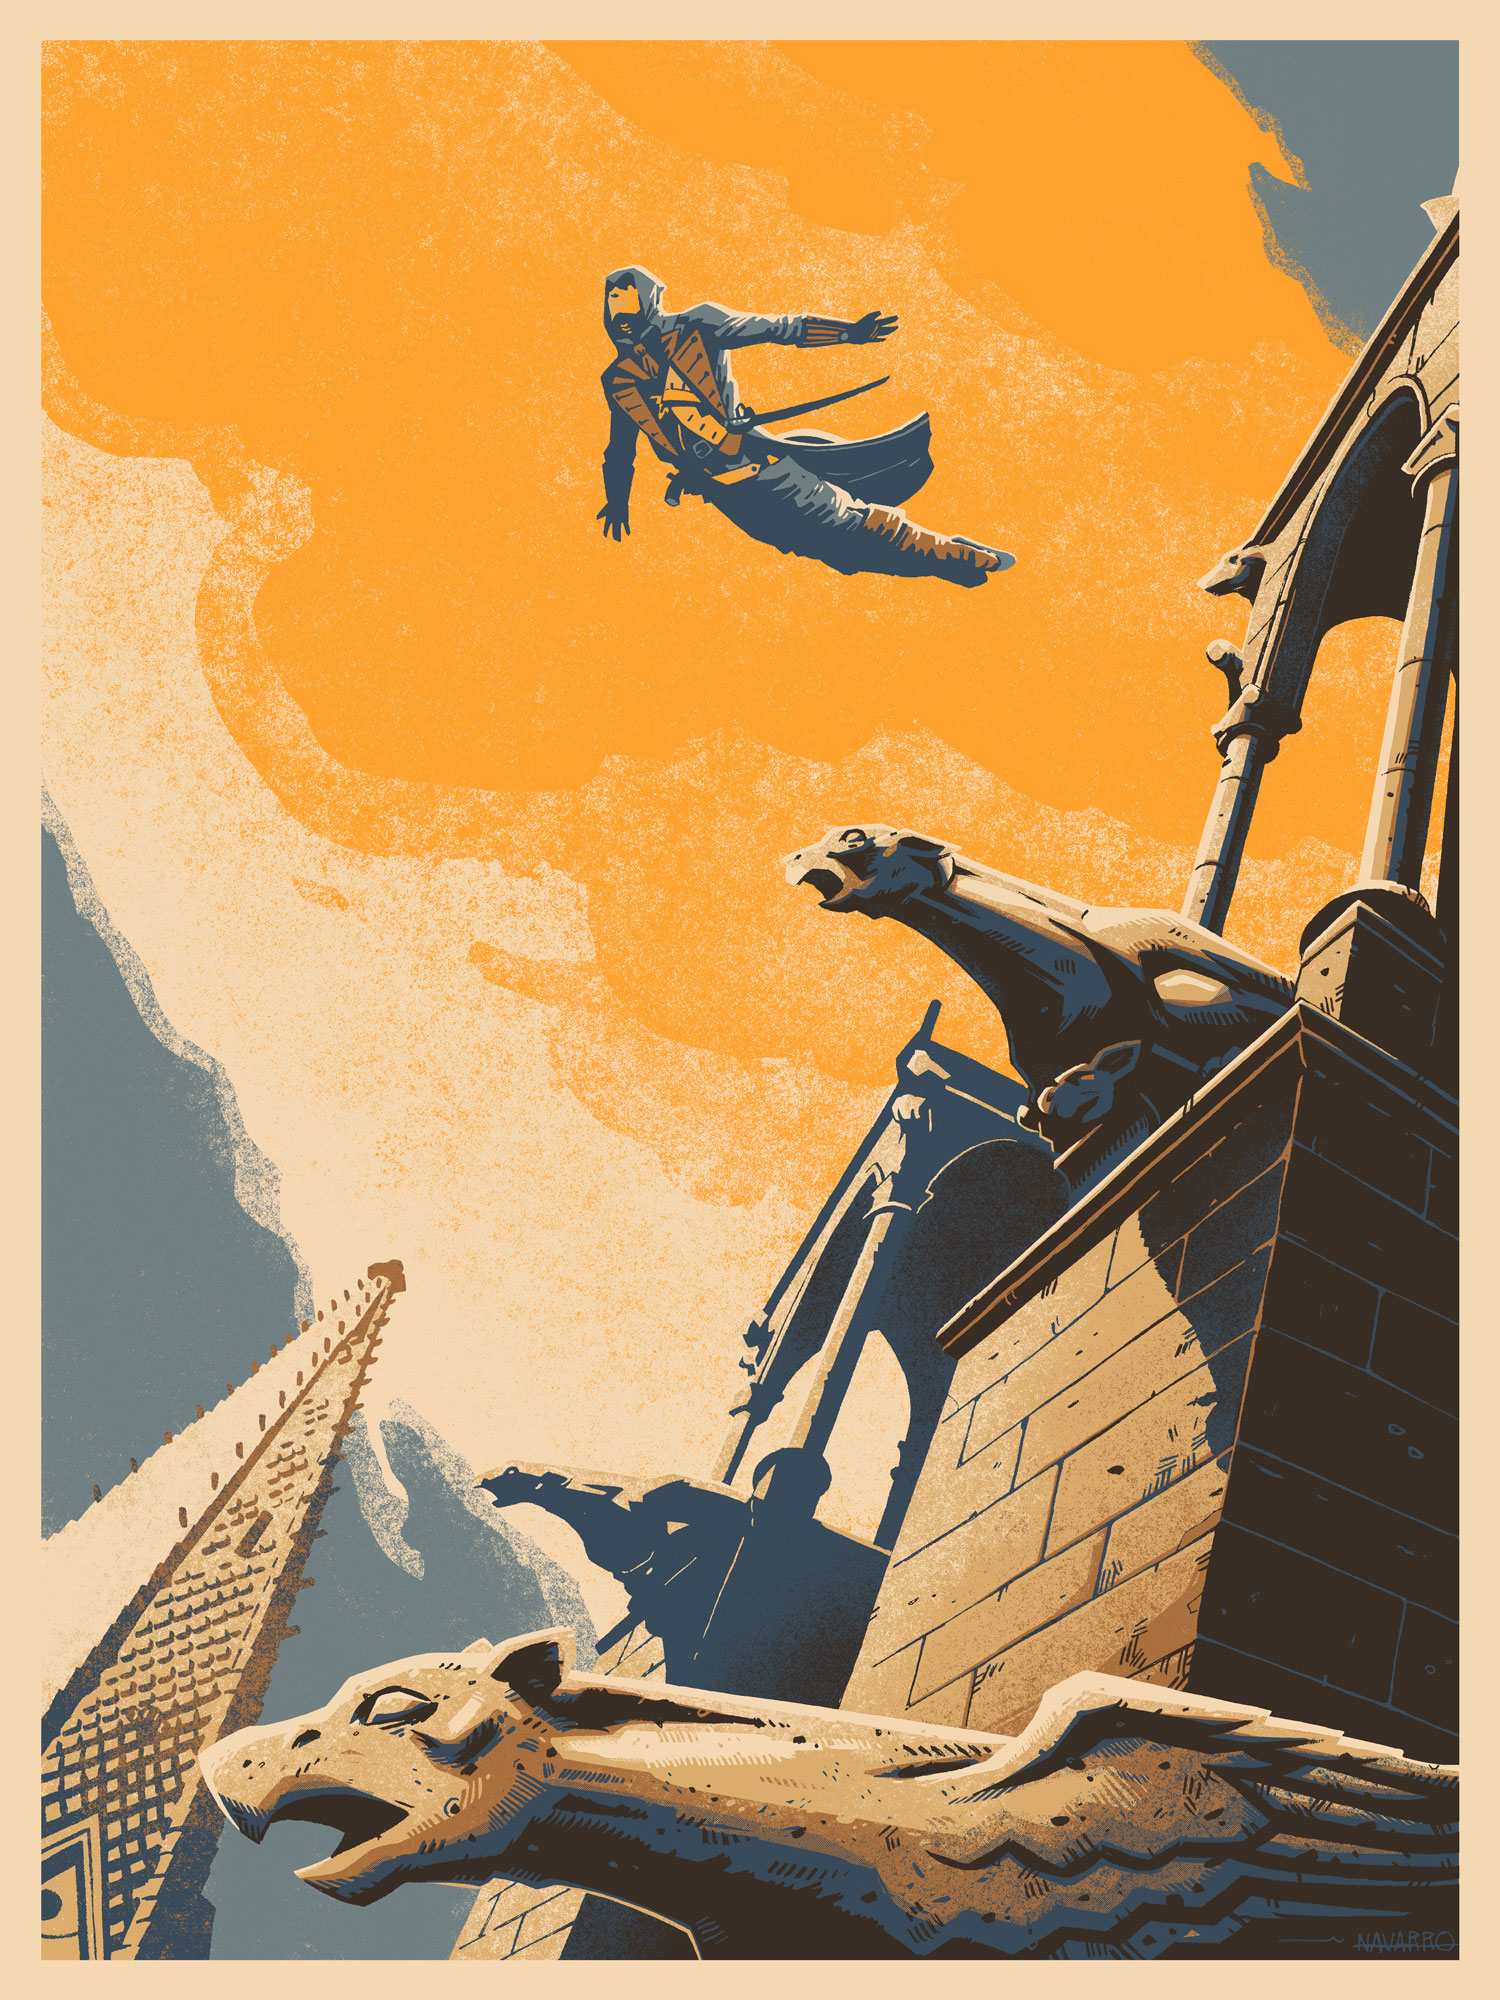 """Leap of Faith"" by Coke Navarro.  18"" x 24"" 6-color Screenprint.  Ed of 150 N.  €35 ($39)"